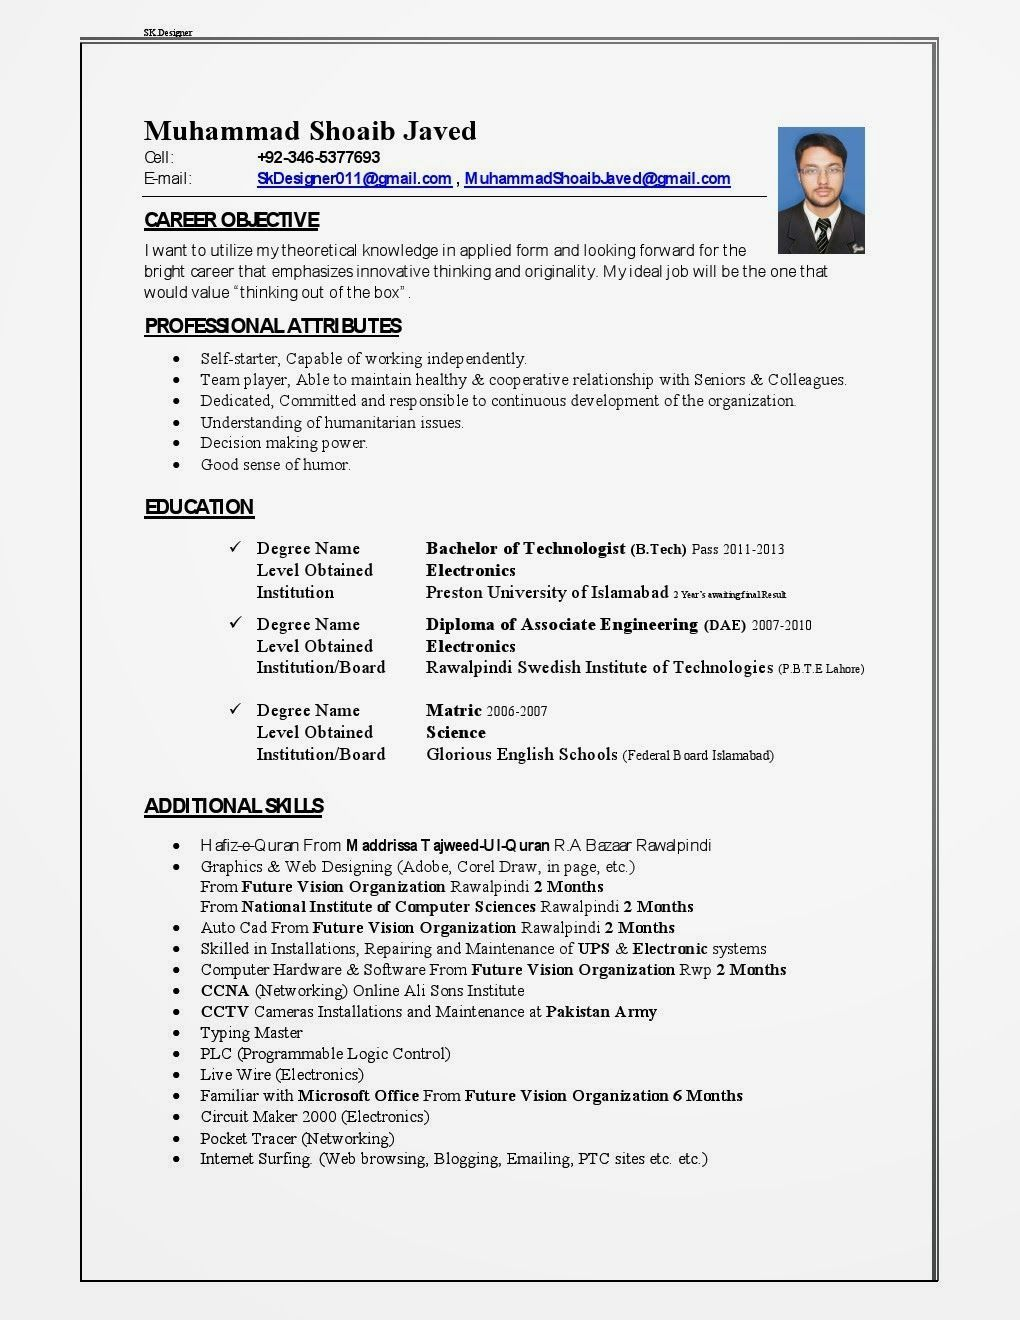 Cv Template Qatar Best resume template, Cv template, Job